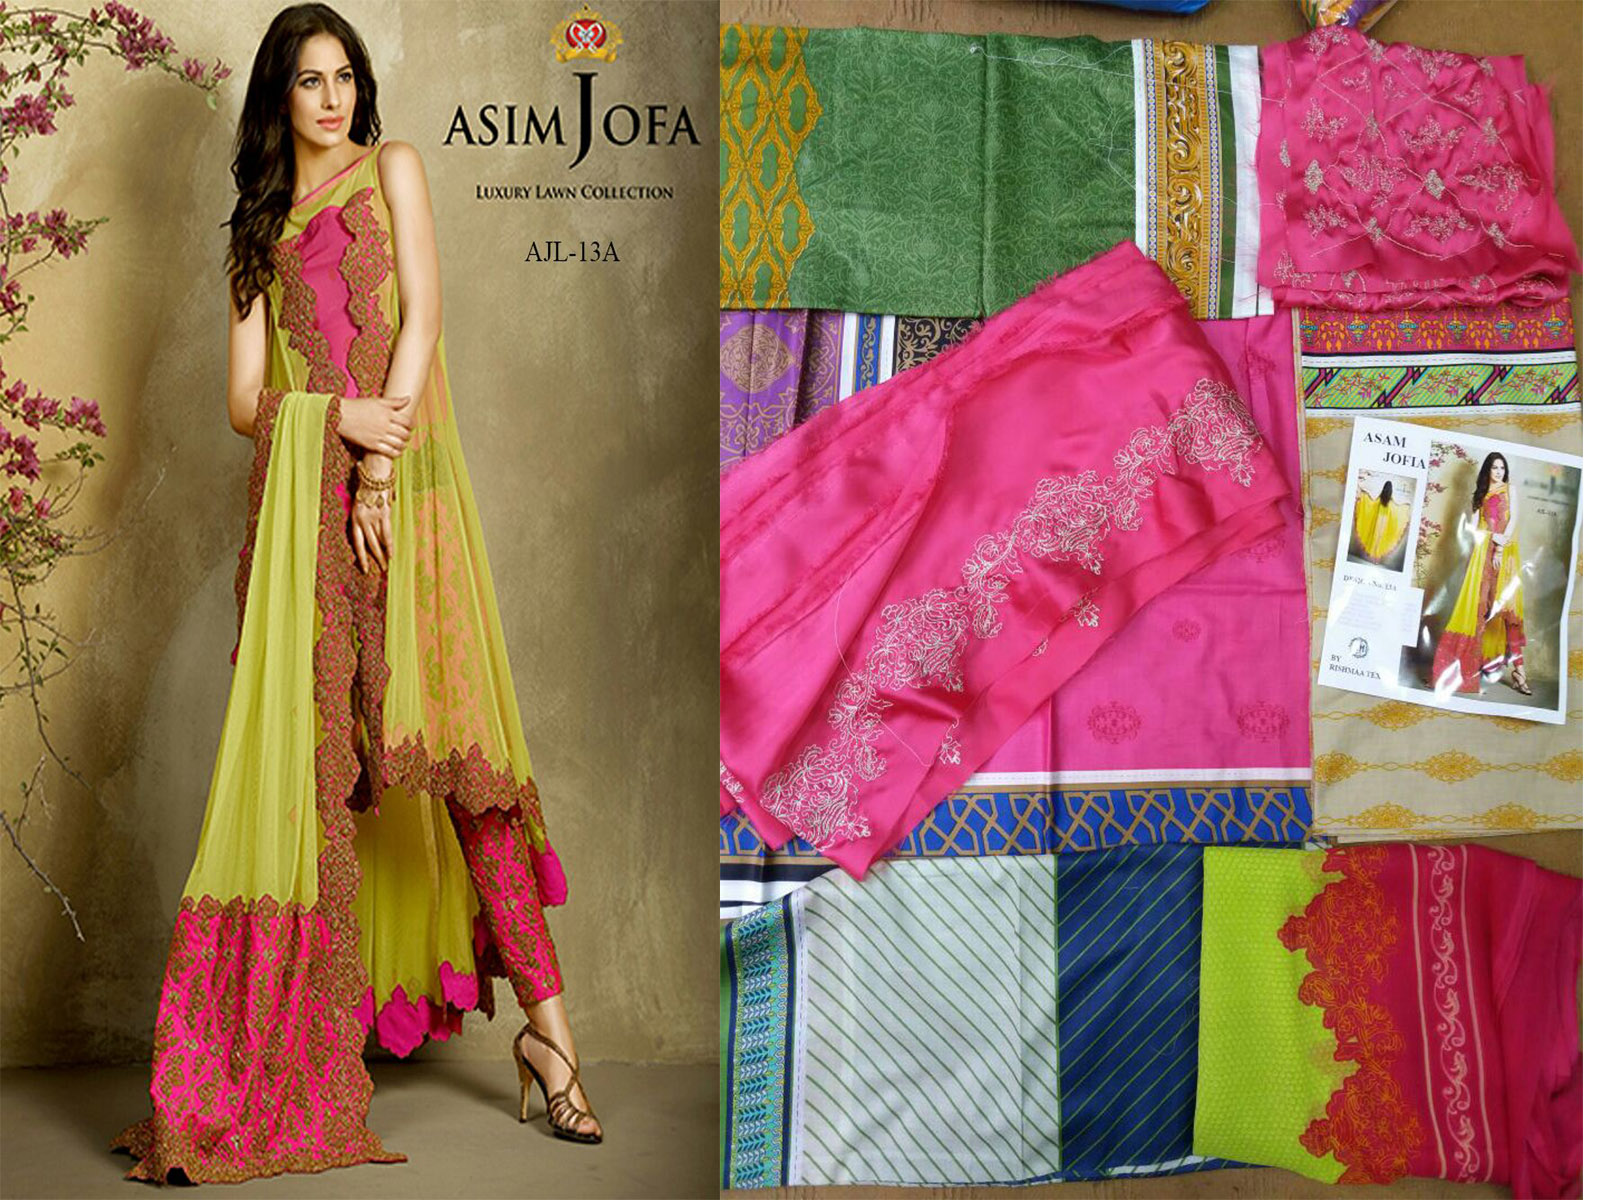 Asim jofa 13 A B available in lawn fabric with chiffon dupatta